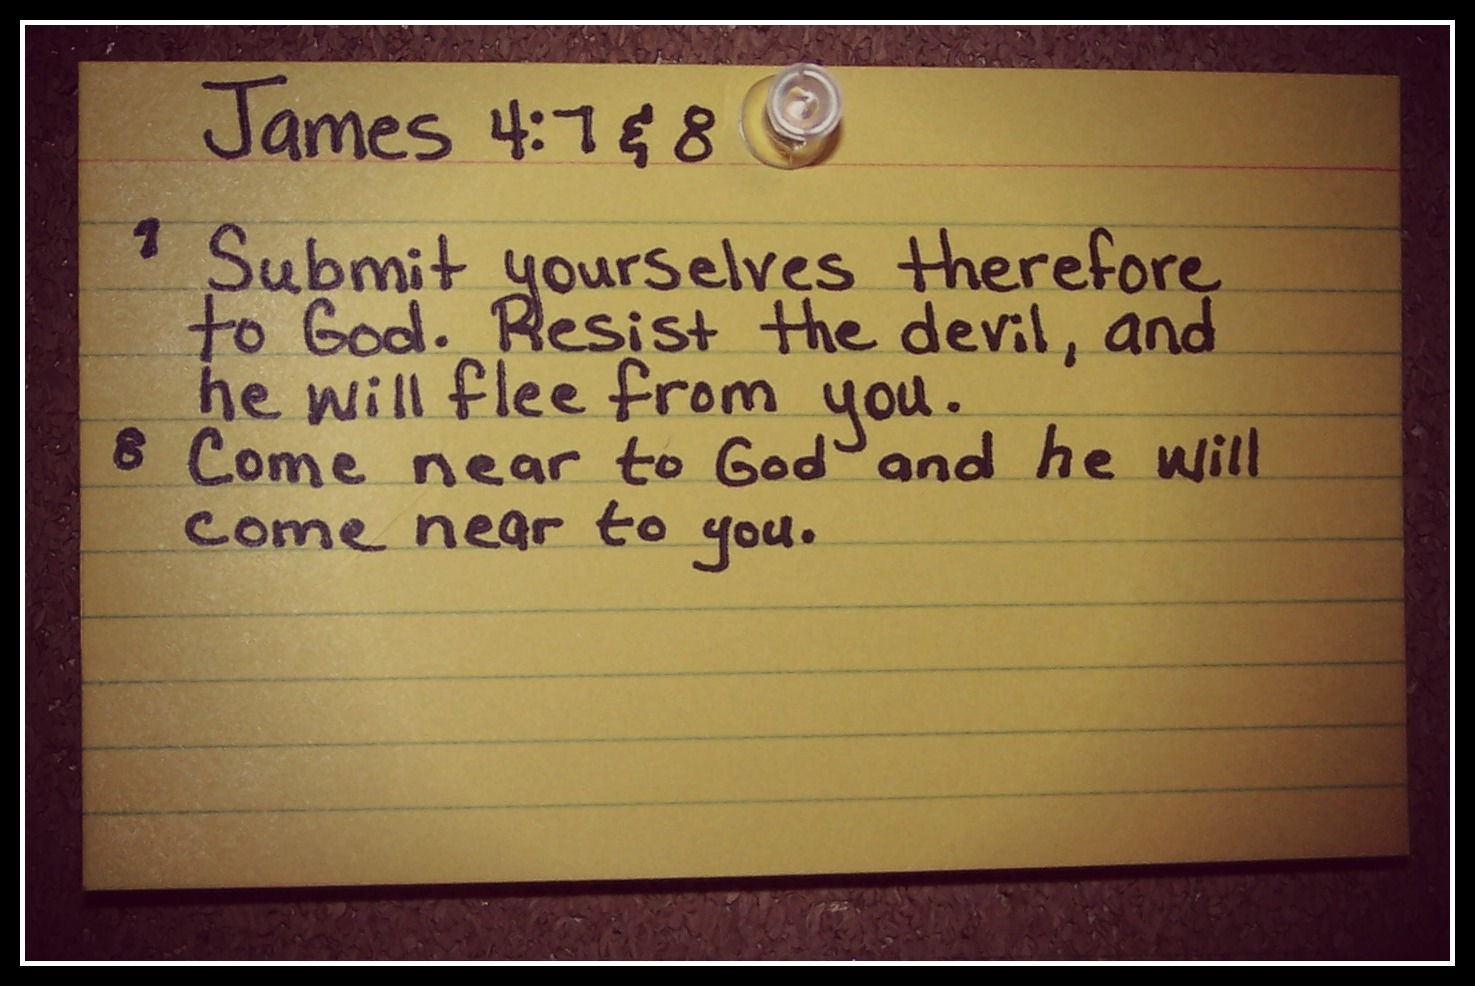 Bible Quotes About Helping People: Bible Verses About Helping Others